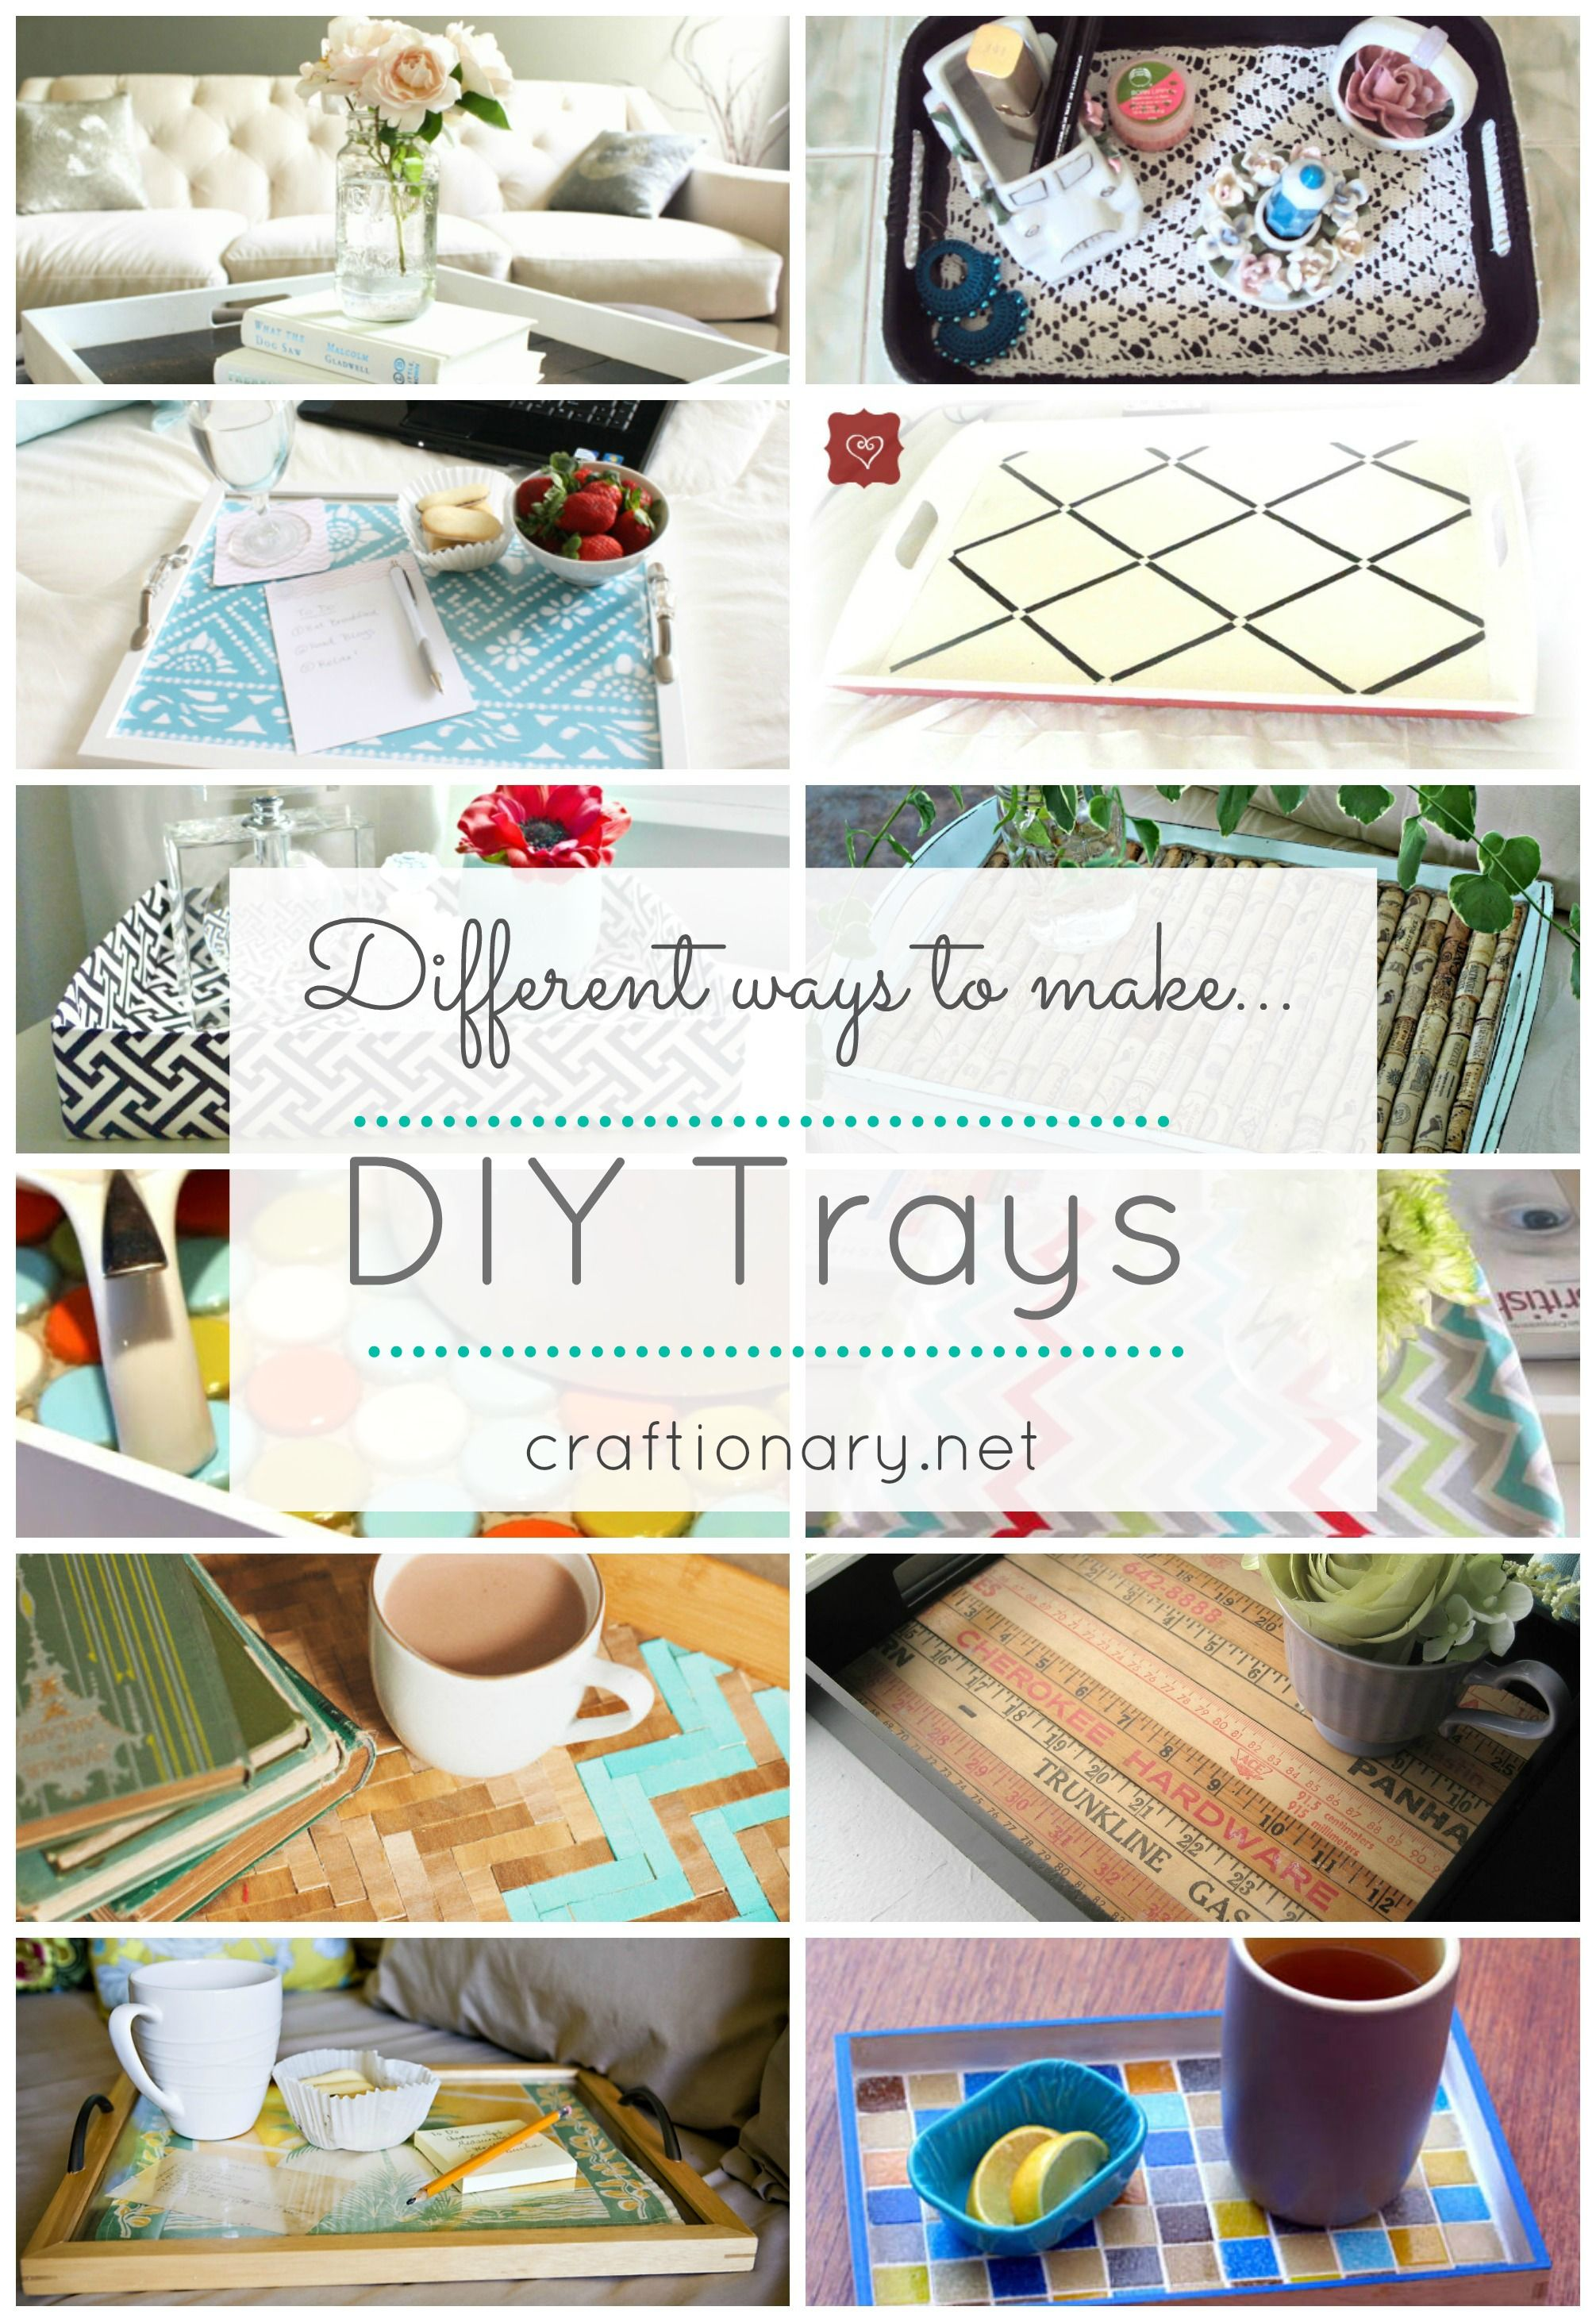 15 Decorative DIY trays for home (tutorials | Trays, Paint fabric ...